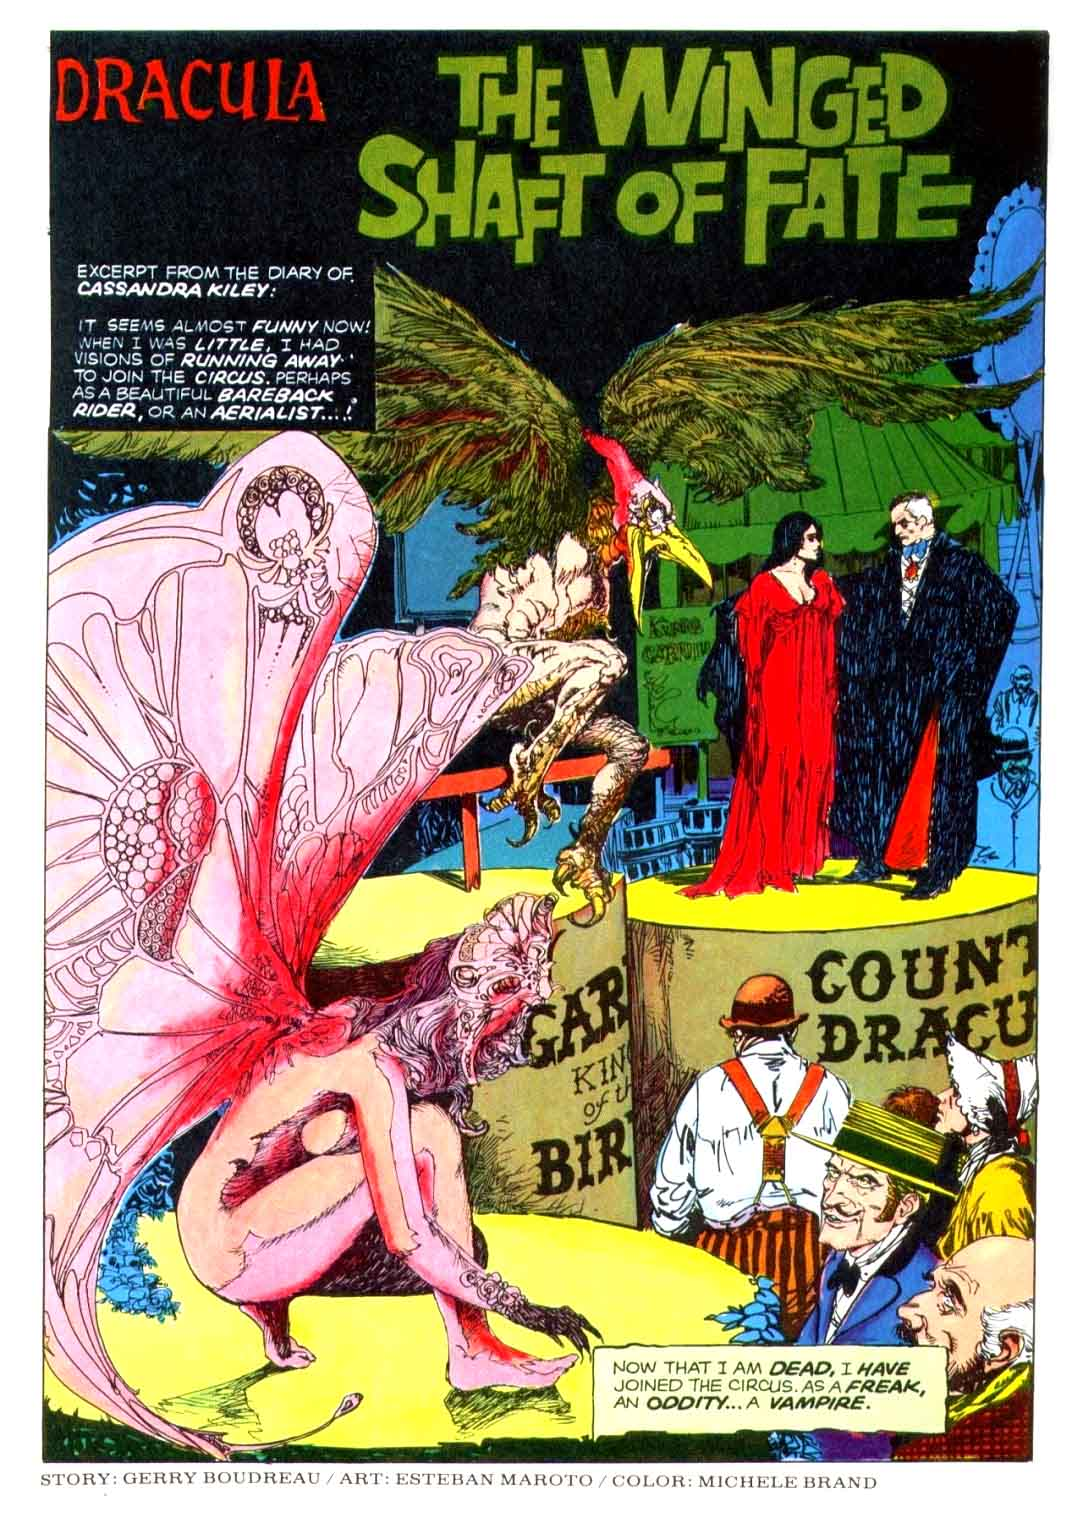 Dracula The Winged Shaft of Fate 1975